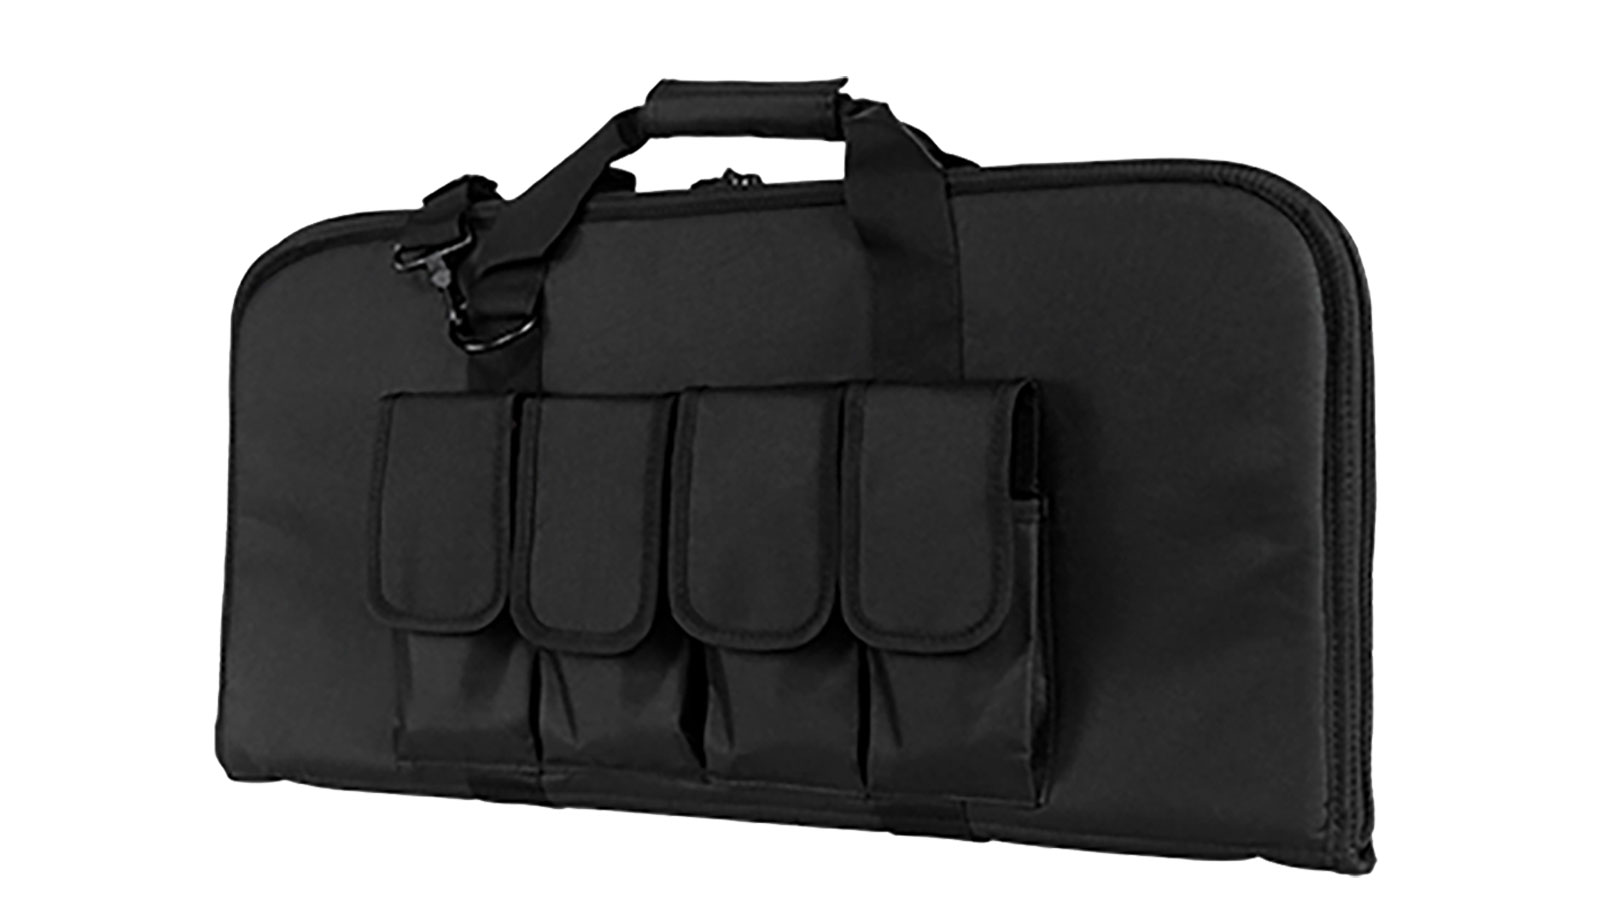 NC Star 28&quot Subgun AR and AK Pistol Case Black